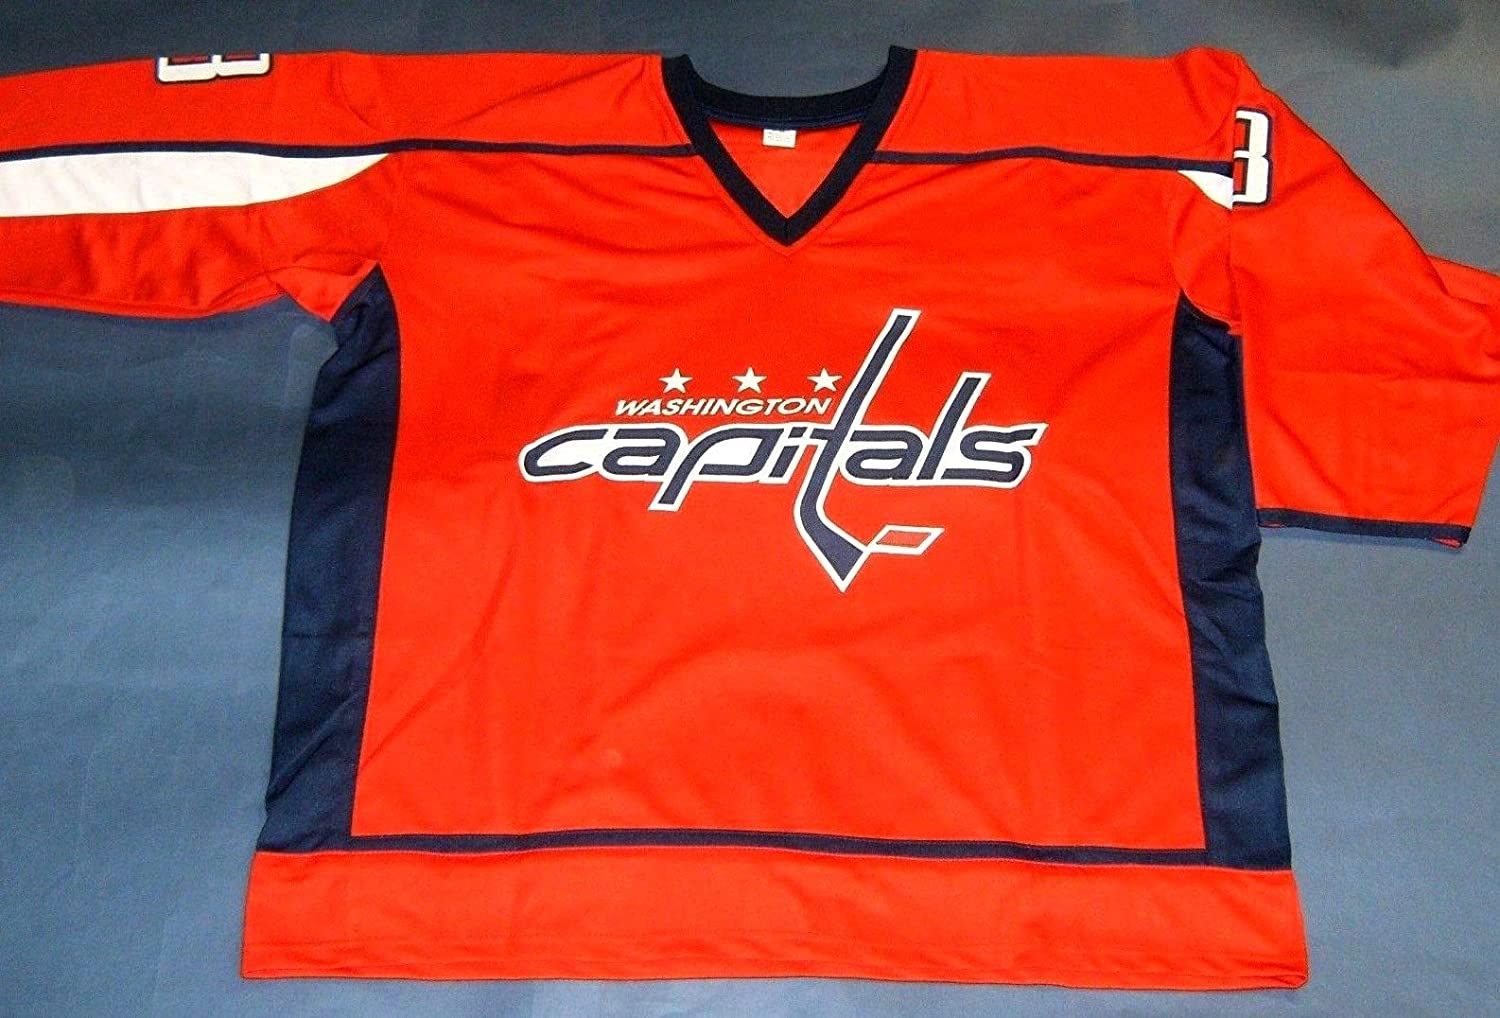 timeless design f348f 276d5 Alex Ovechkin Autographed Signed Washington Capitals Jersey ...